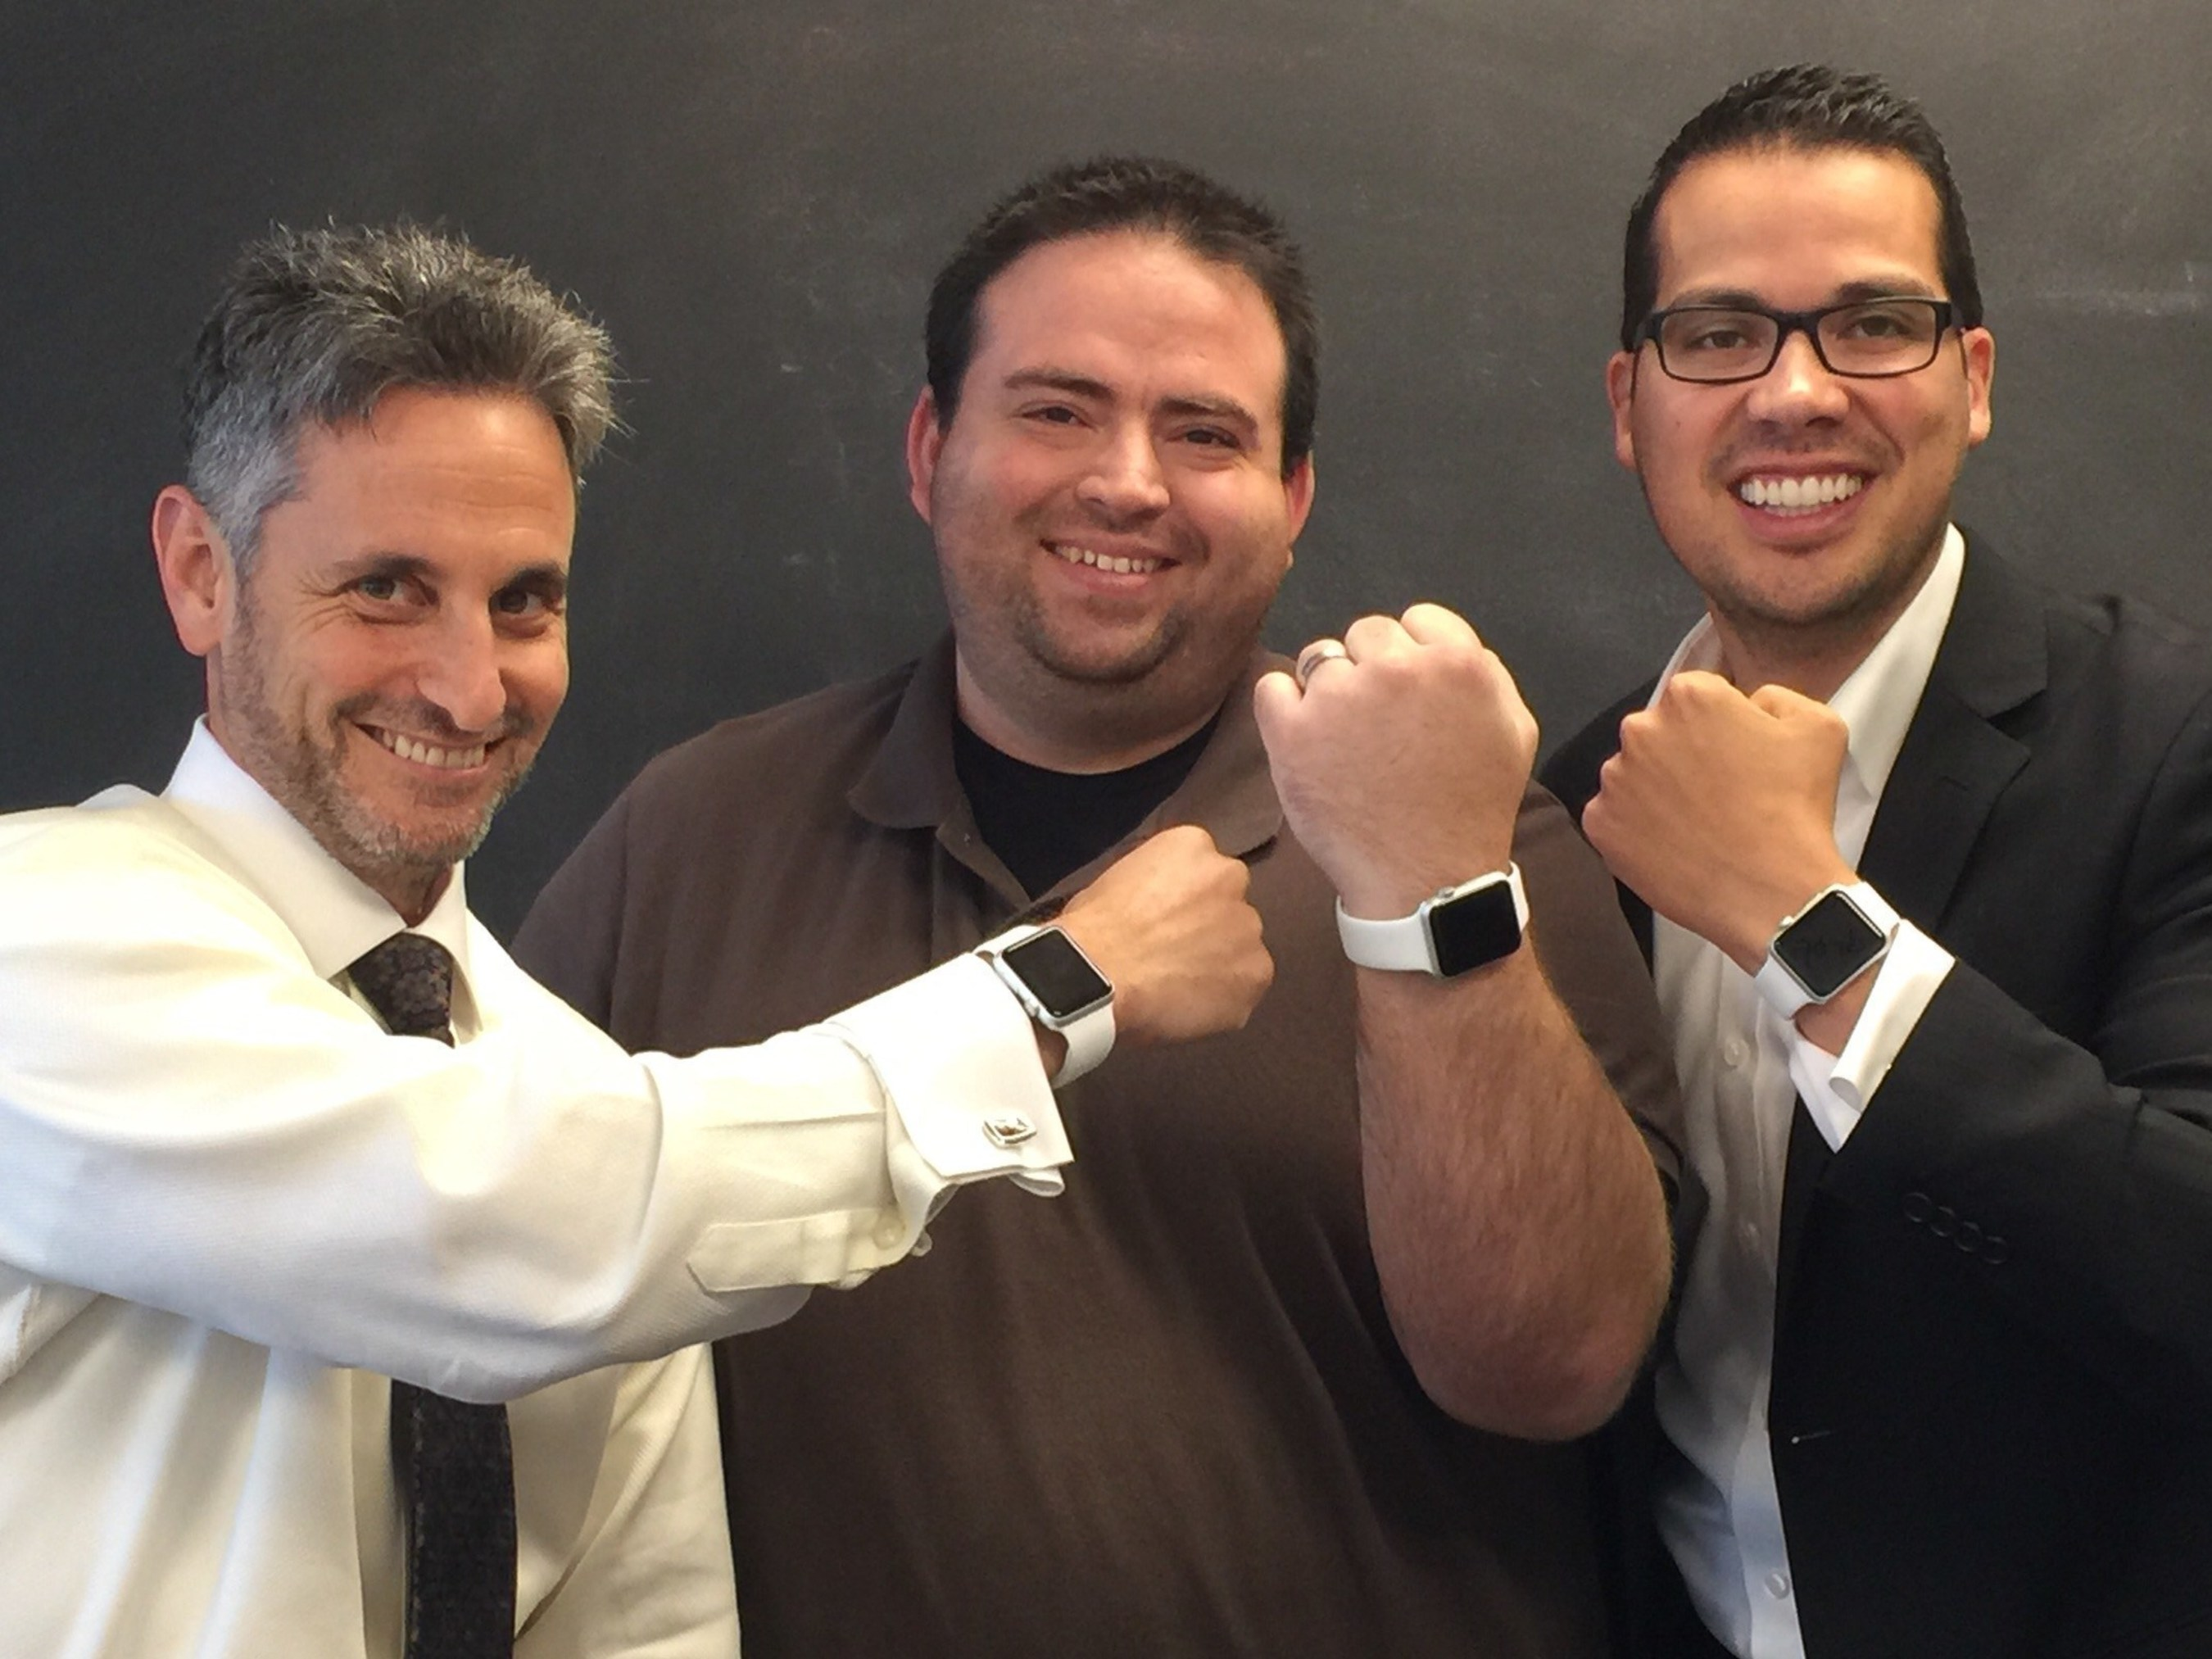 Attorneys at Fennemore Craig Law Firm leverage Apple Watch for holistic legal approach